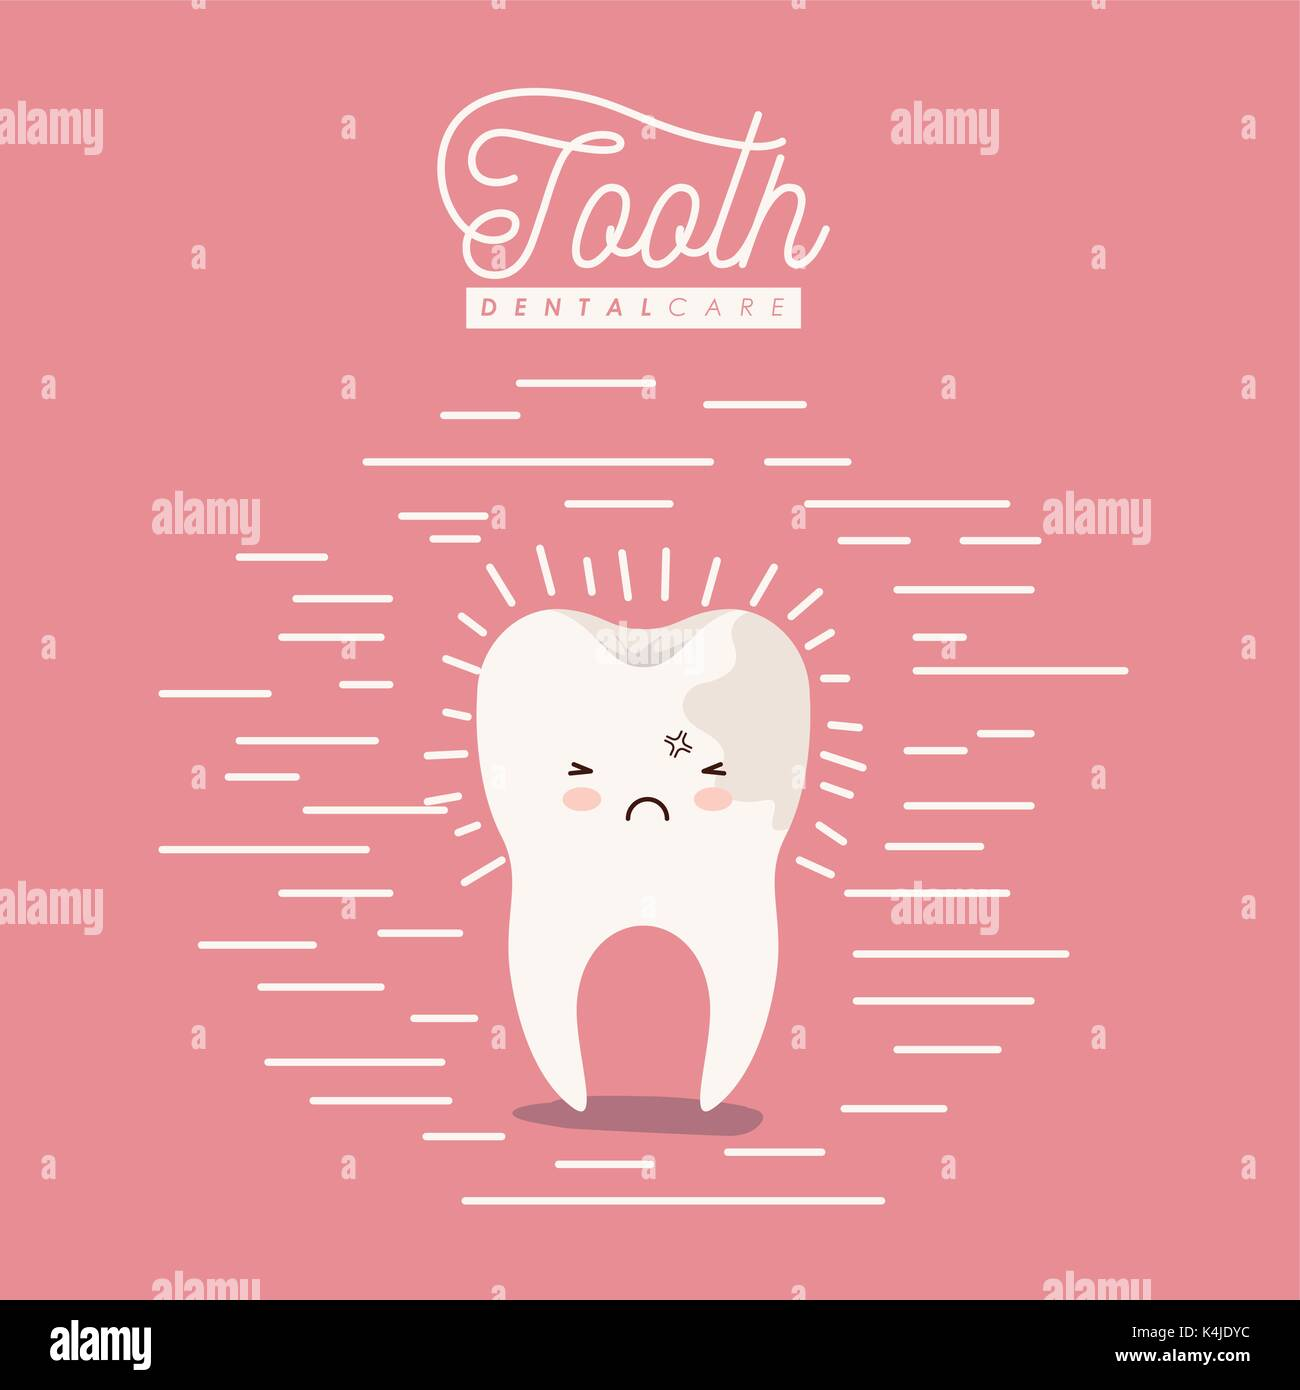 kawaii caricature caries on one side of the tooth dental care with pain expression on color poster with lines - Stock Image